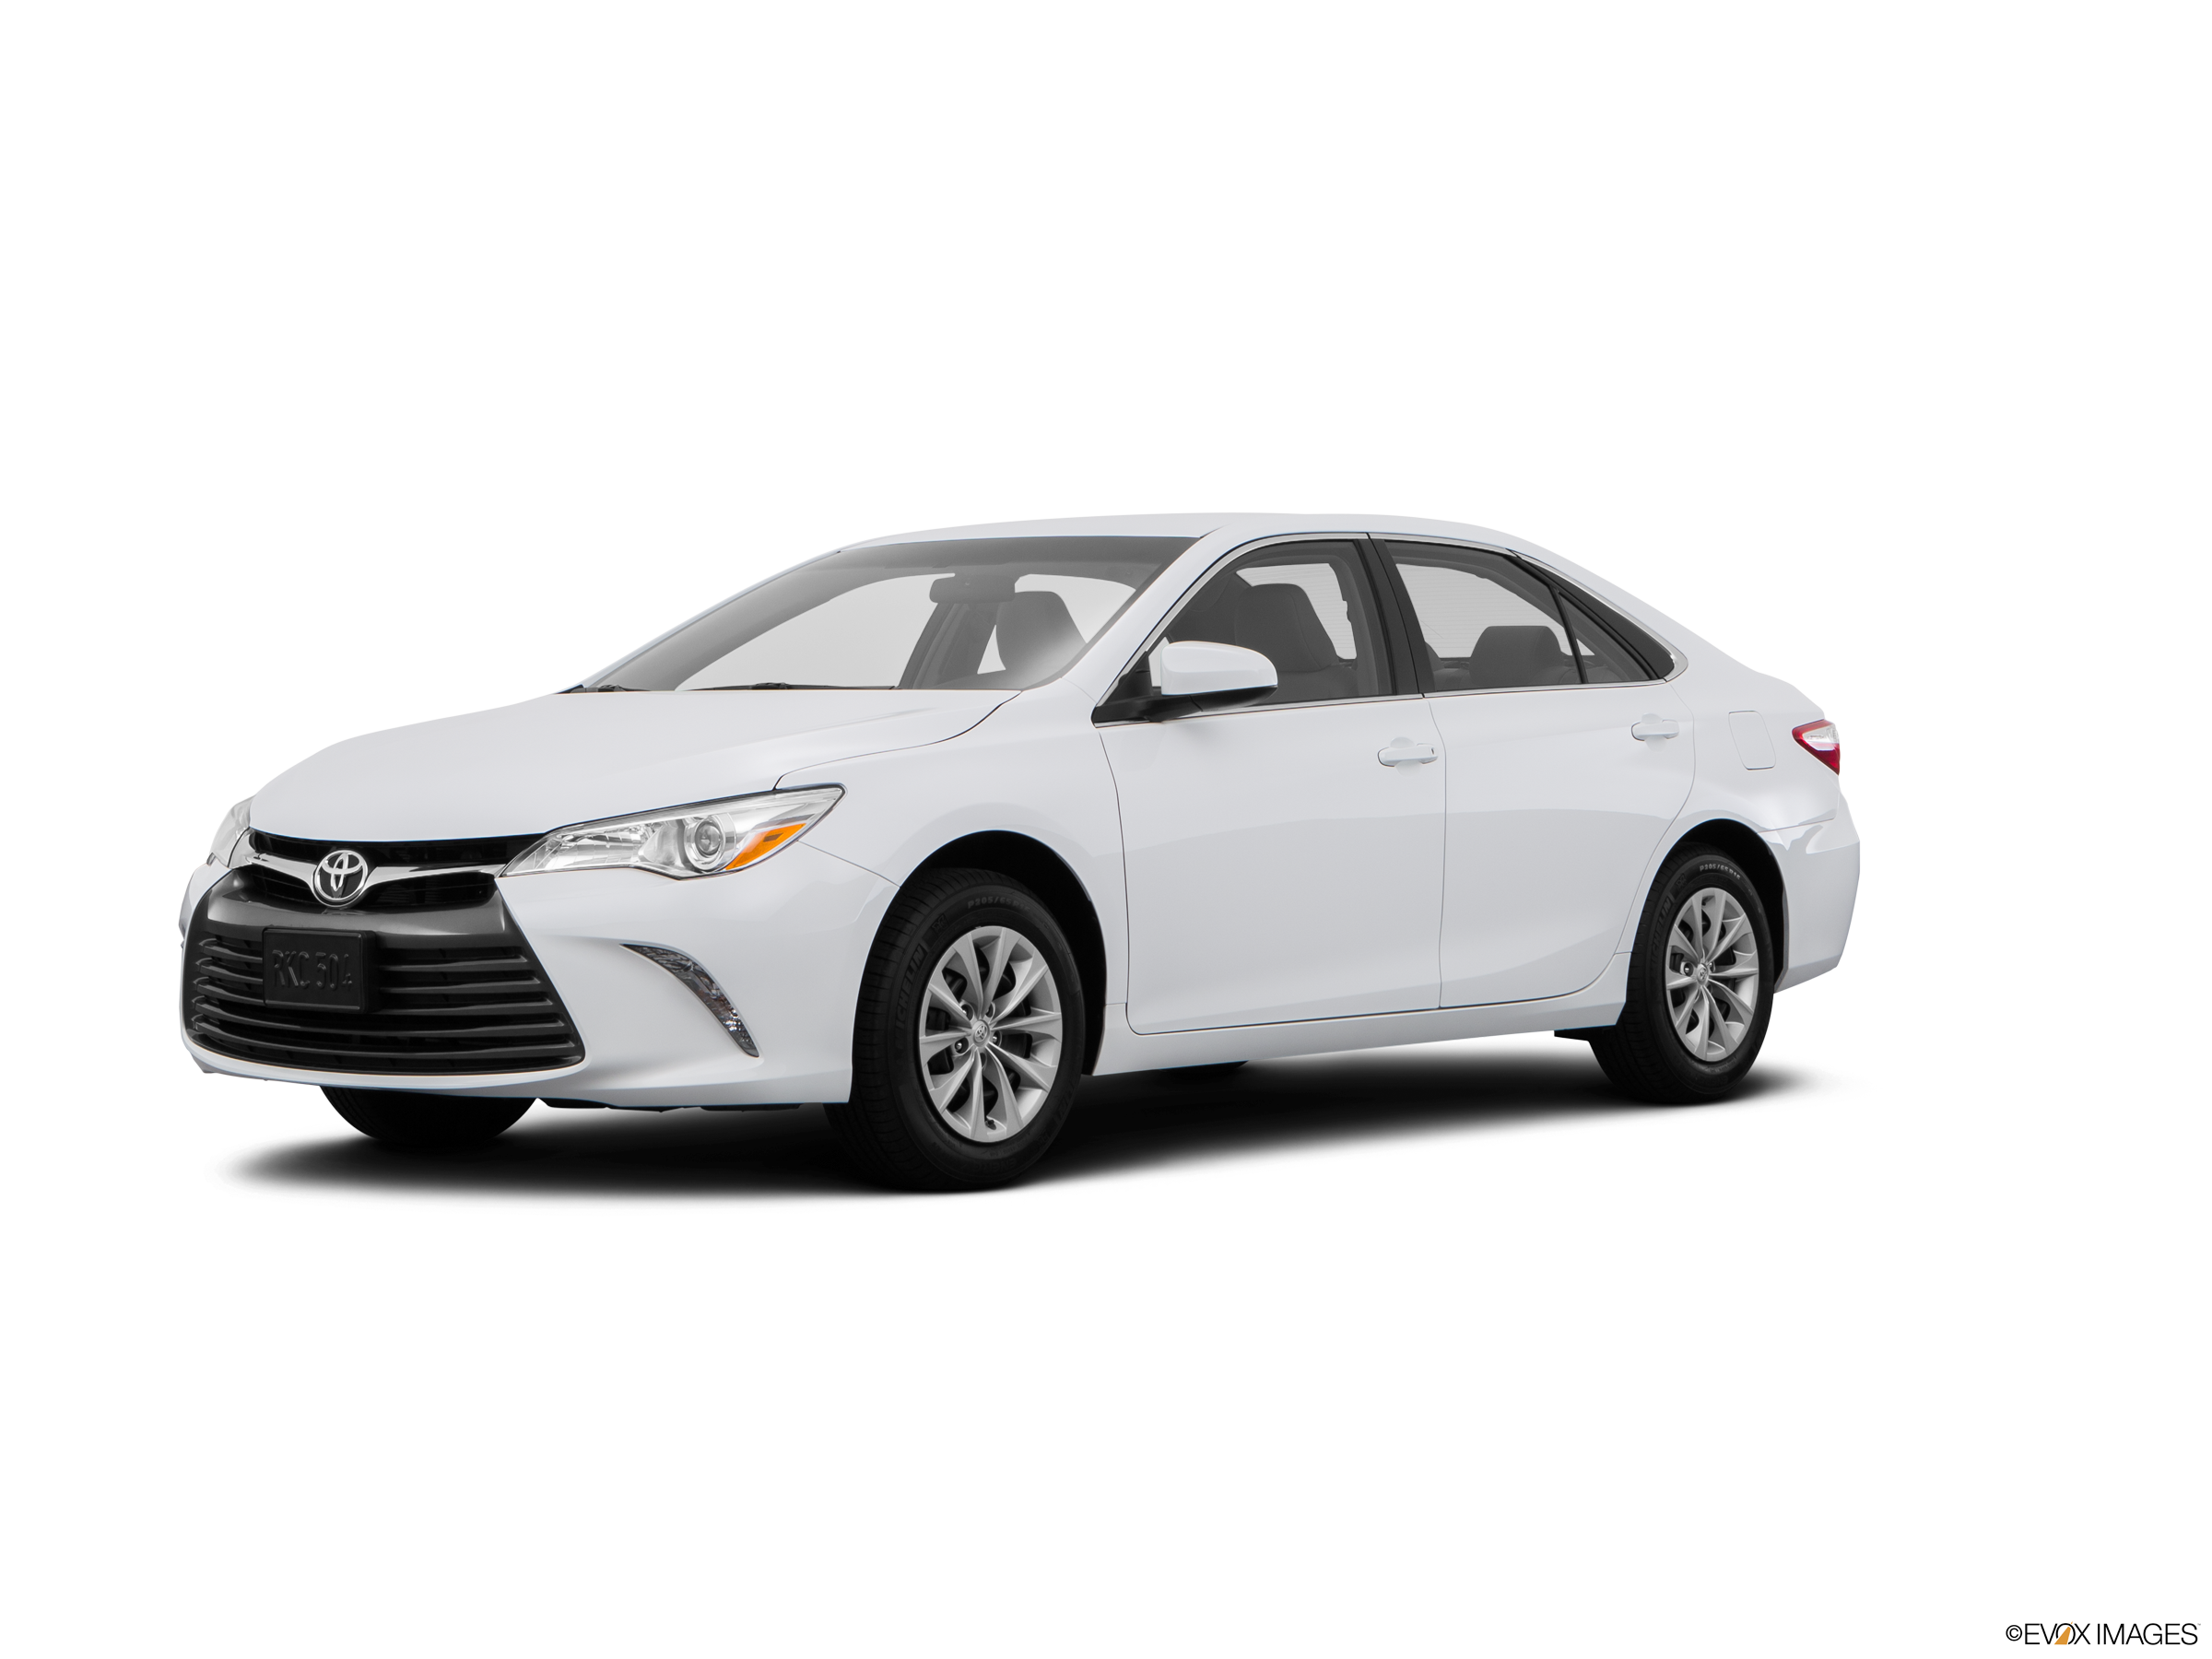 2016 Toyota Camry Values Cars For Sale Kelley Blue Book